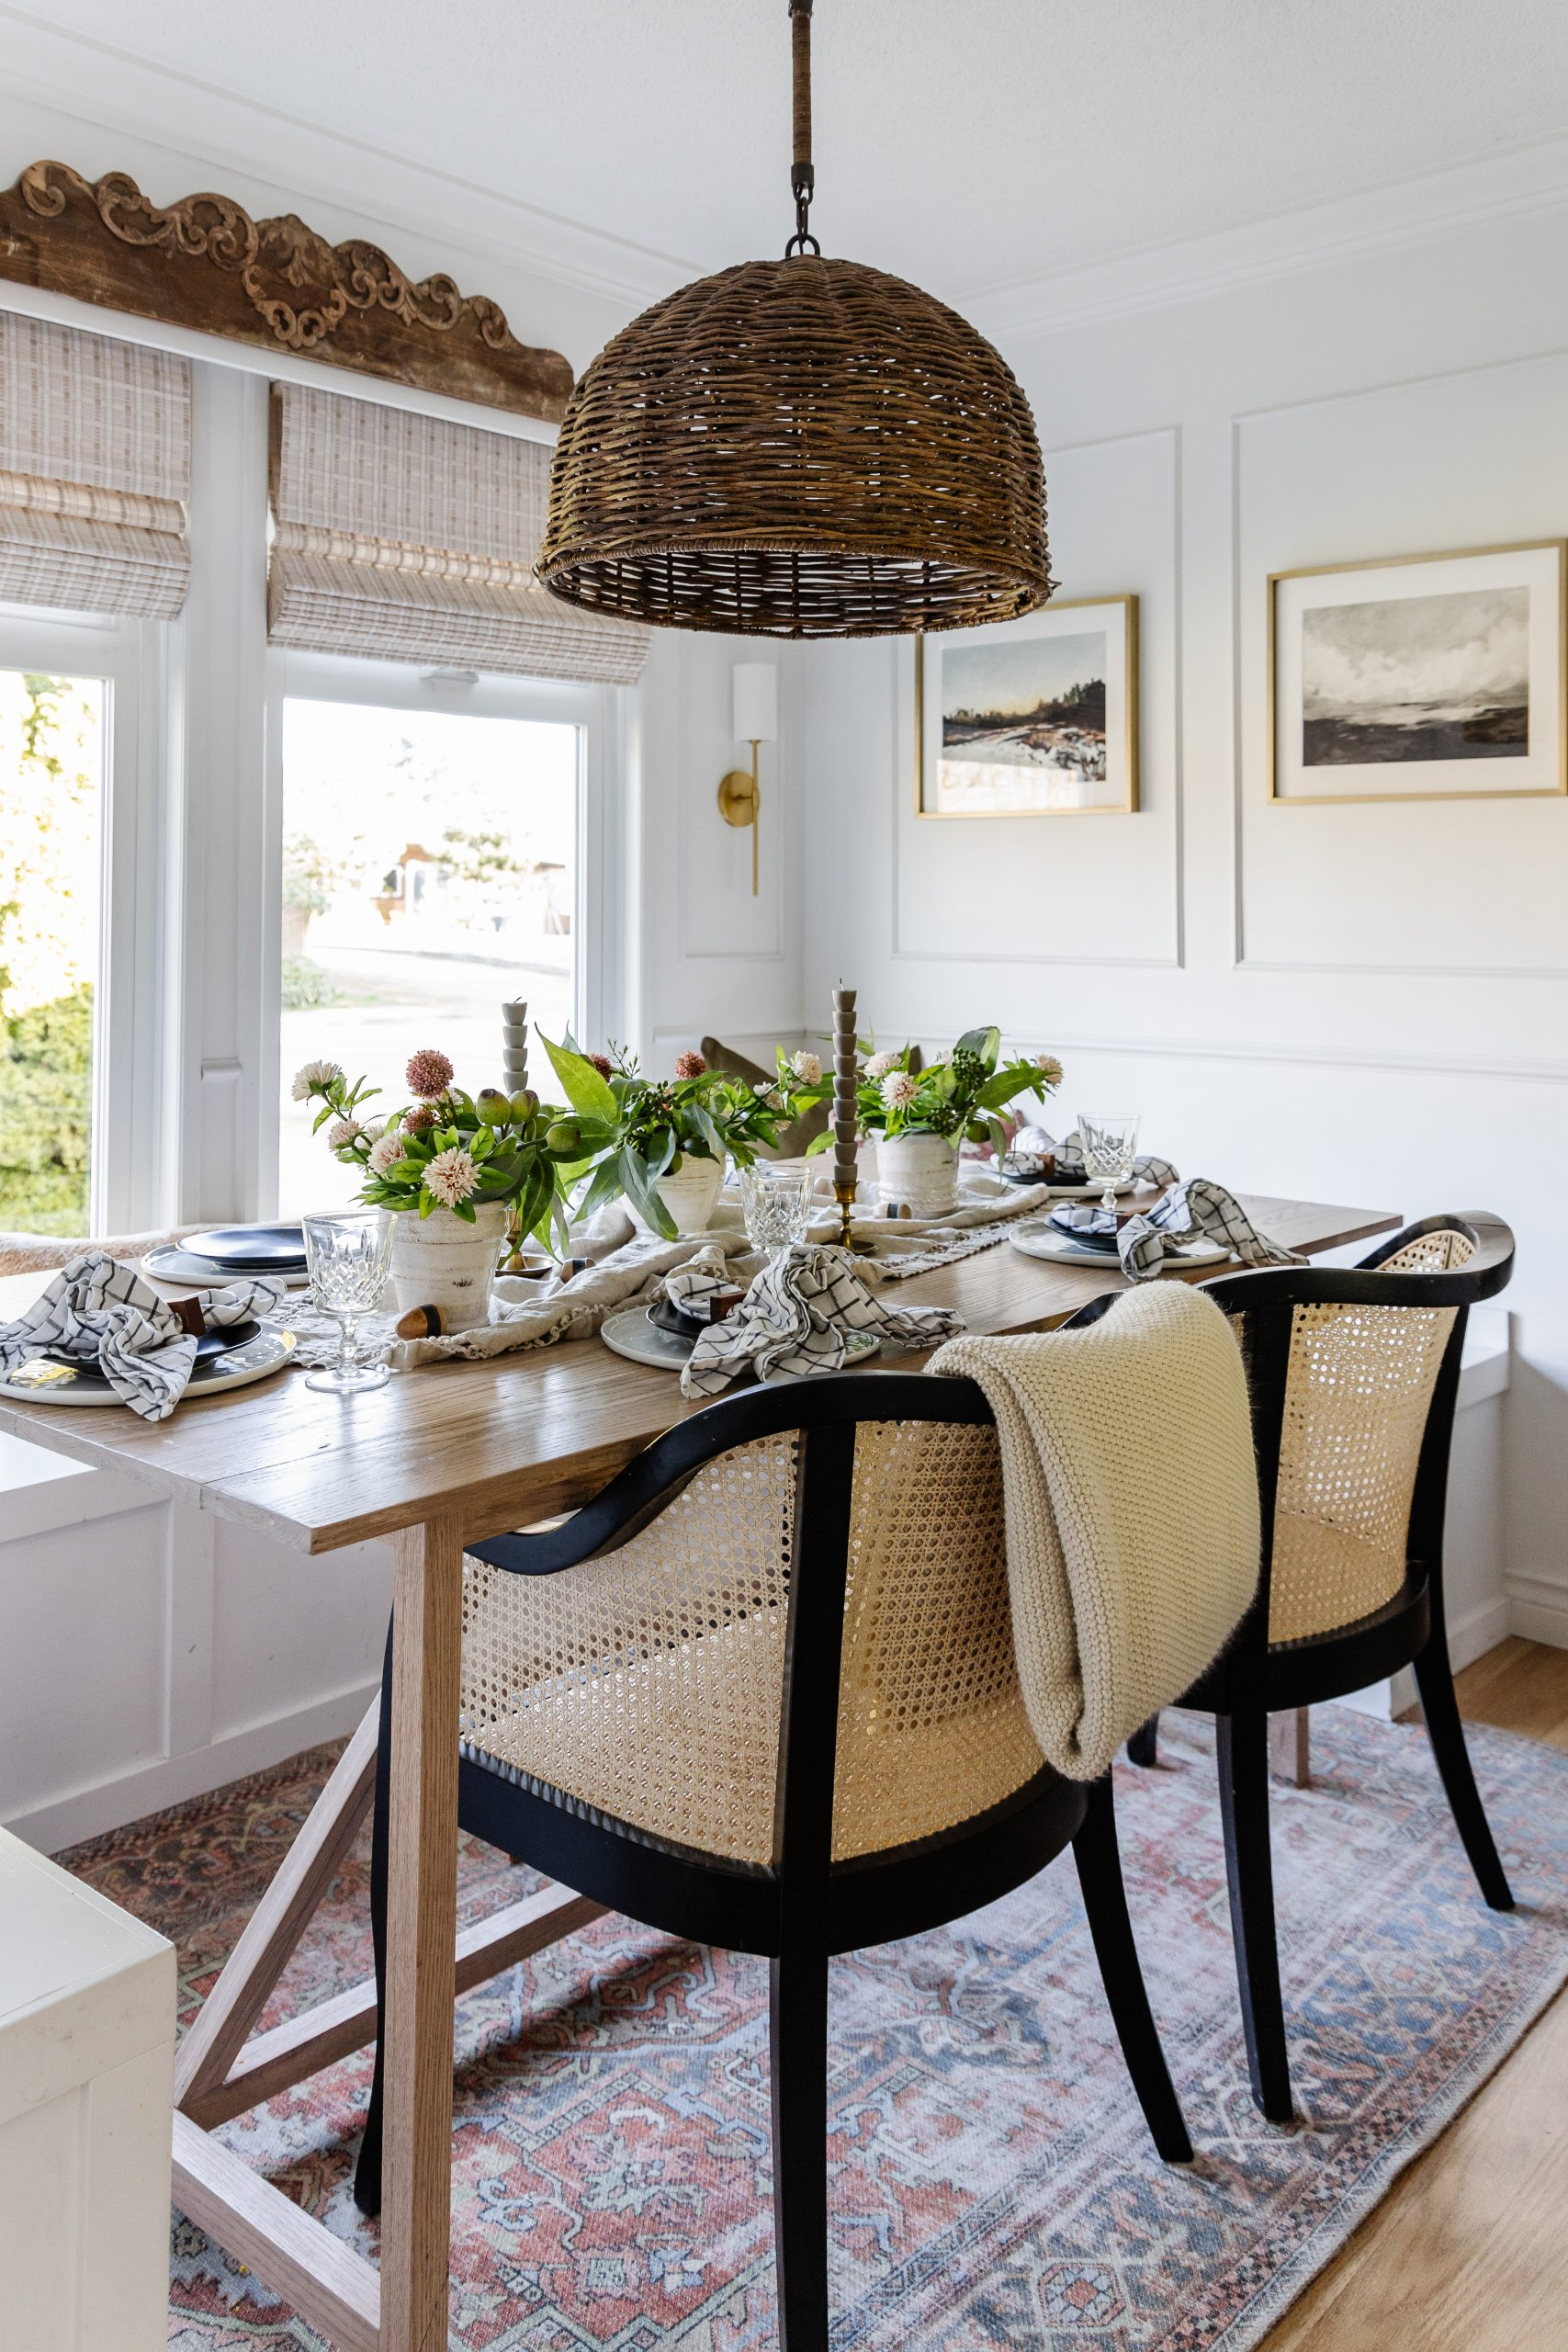 A simple Easter table landscape.  How to decorate your table for the holidays with economical and eaten greens for free.